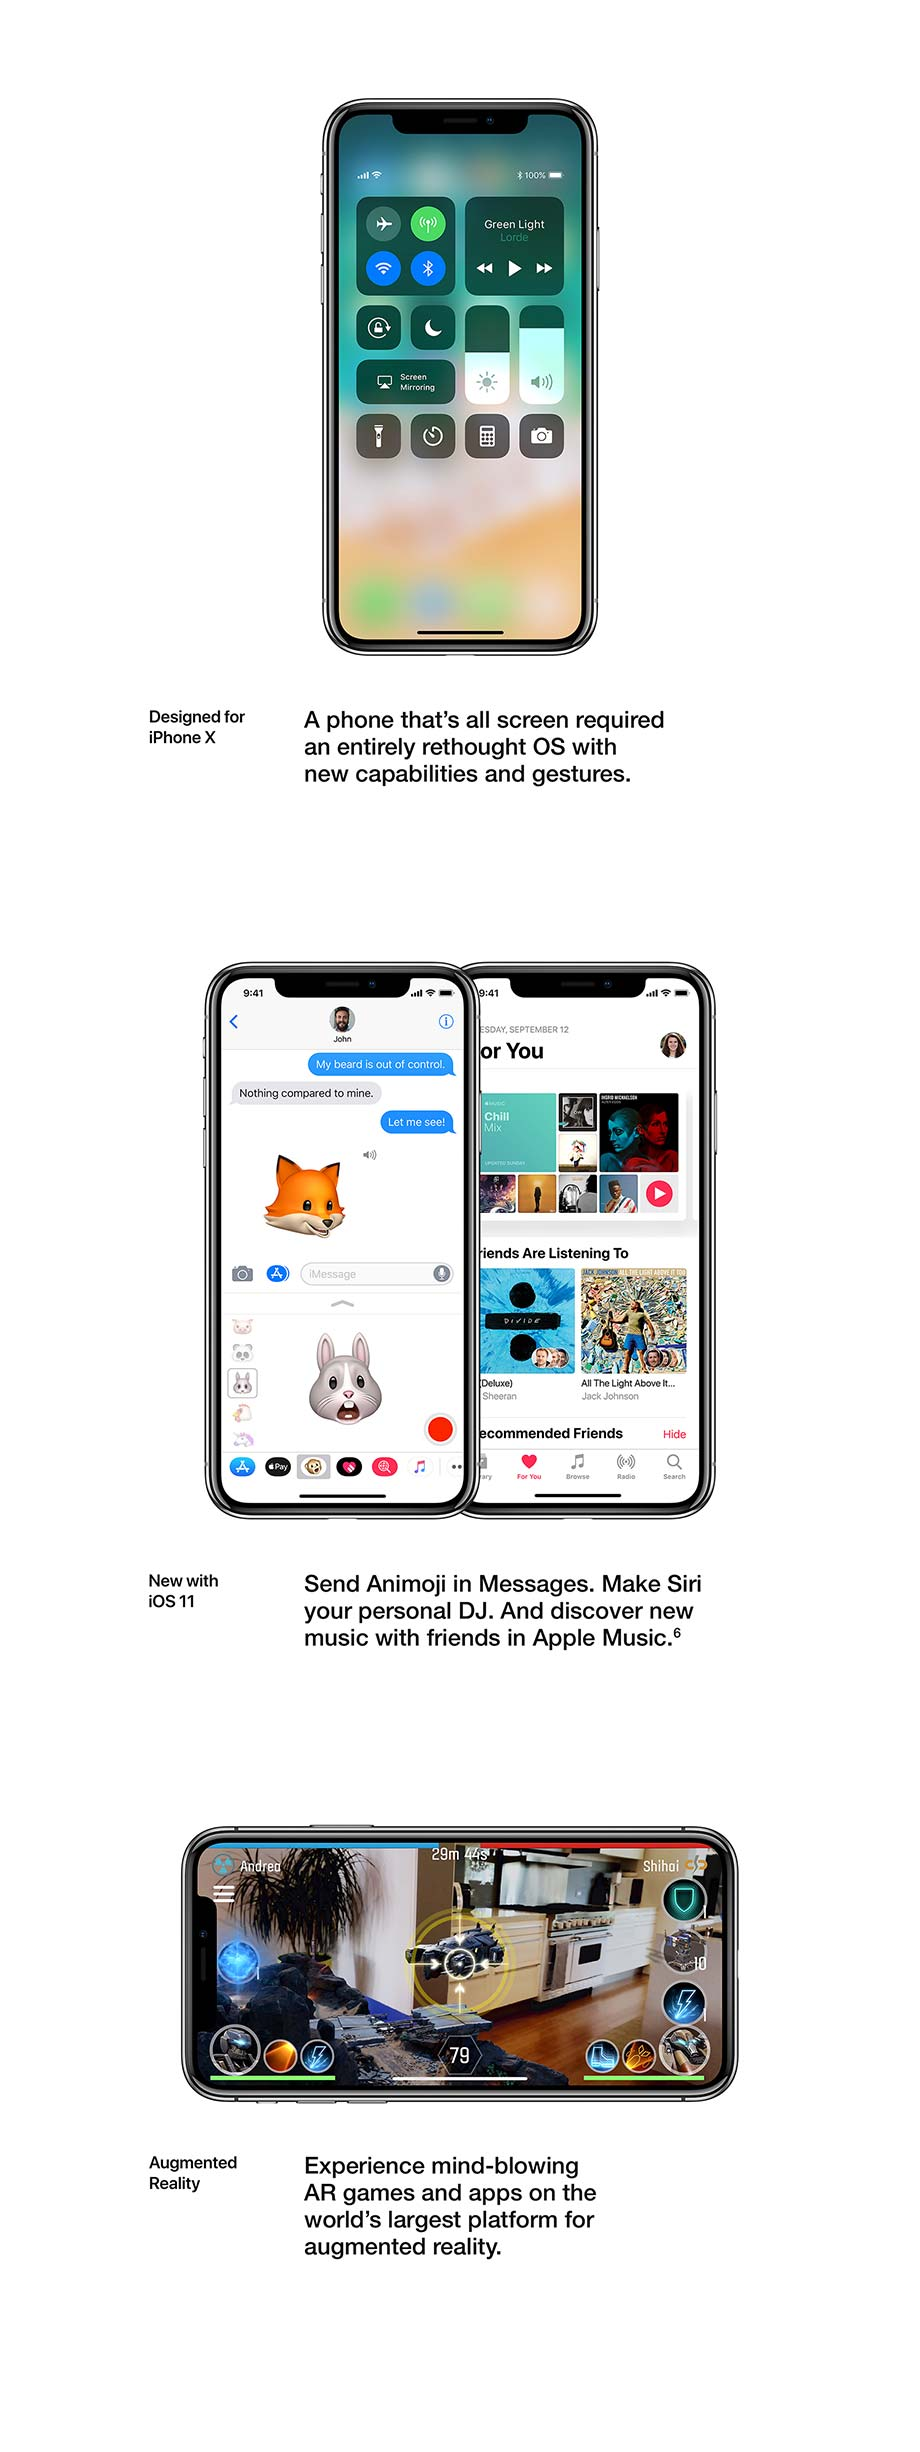 Designed for iPhone X, New with iOS 11, Augmented Reality